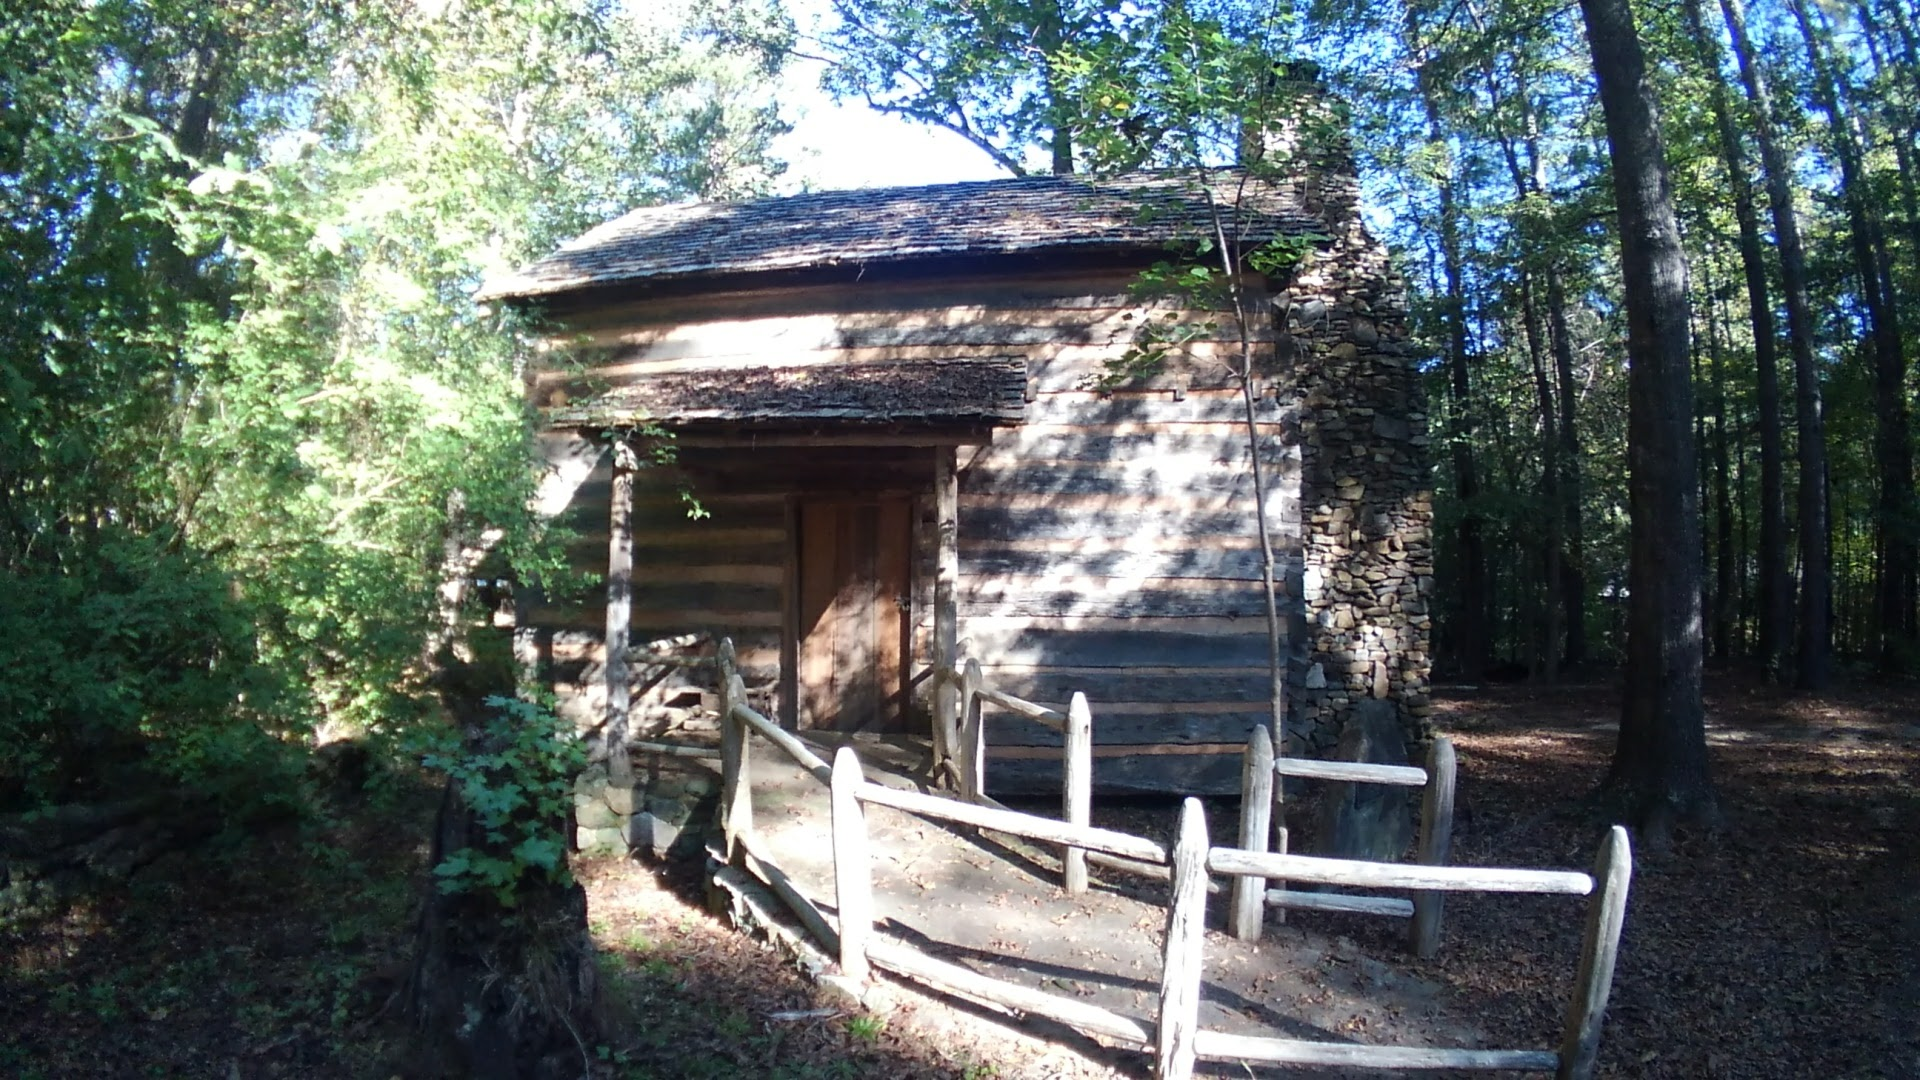 Joe R. Adair Outdoor Education Center